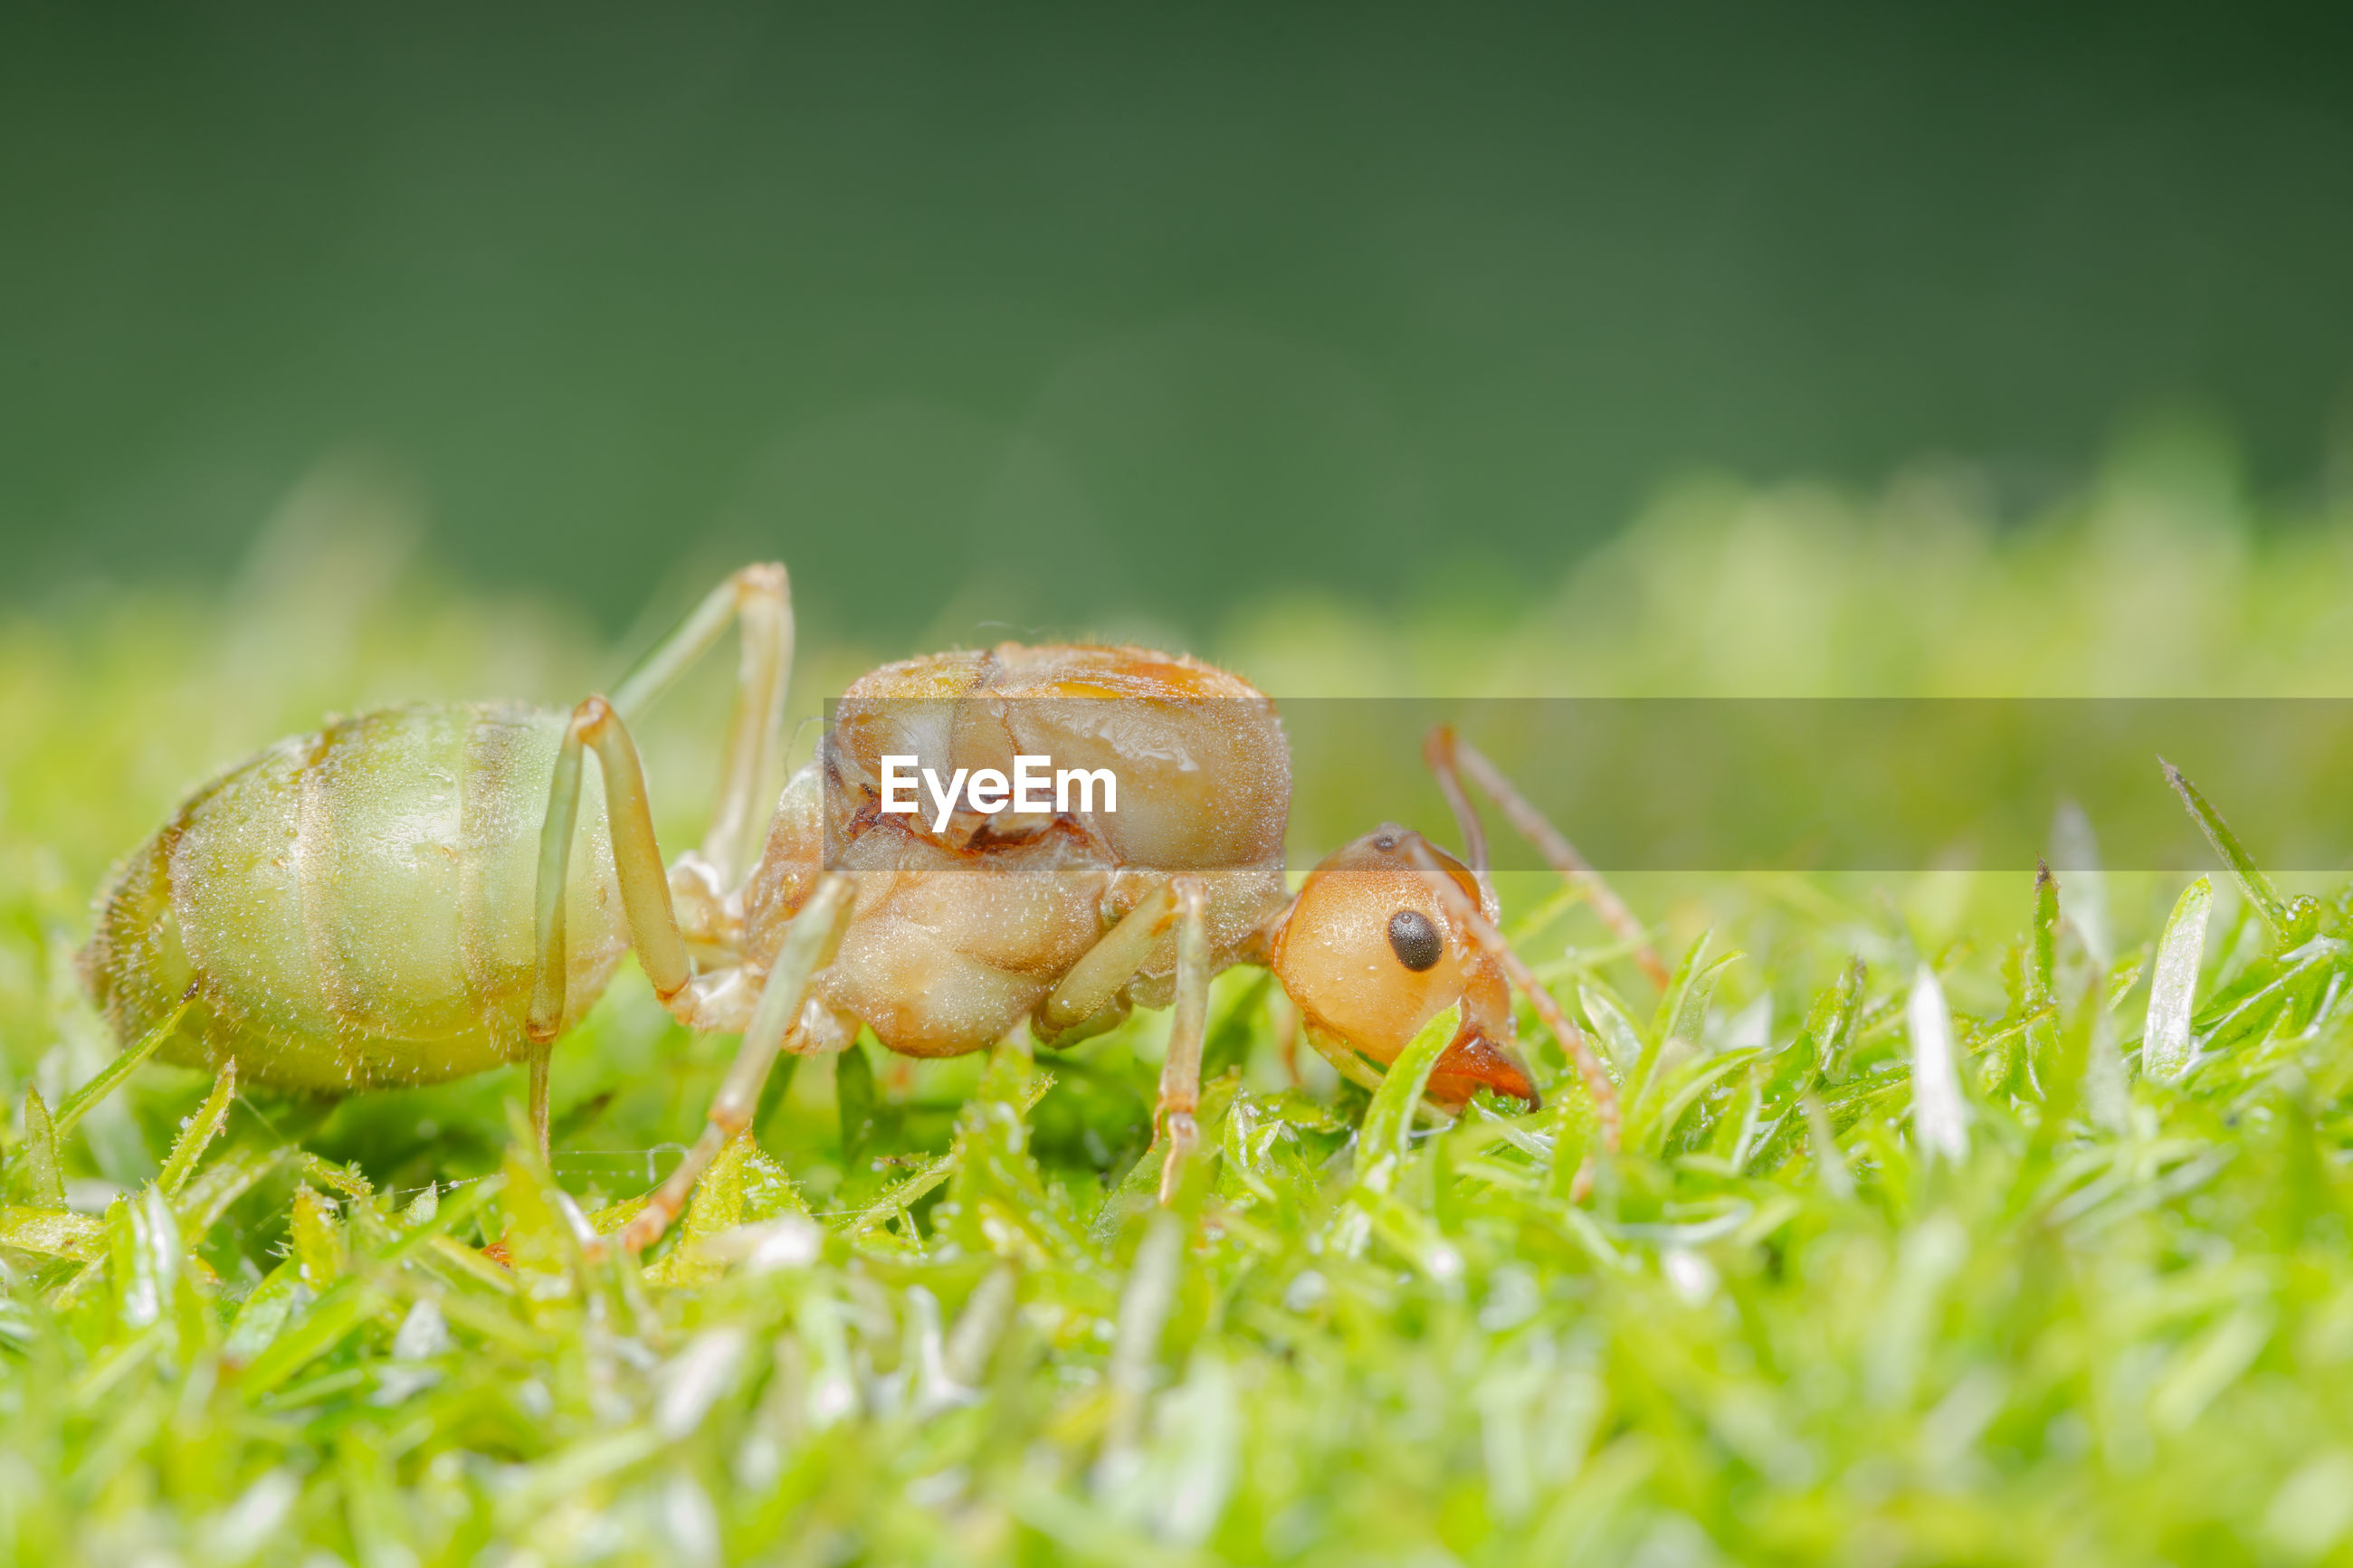 Close-up of ant on grass